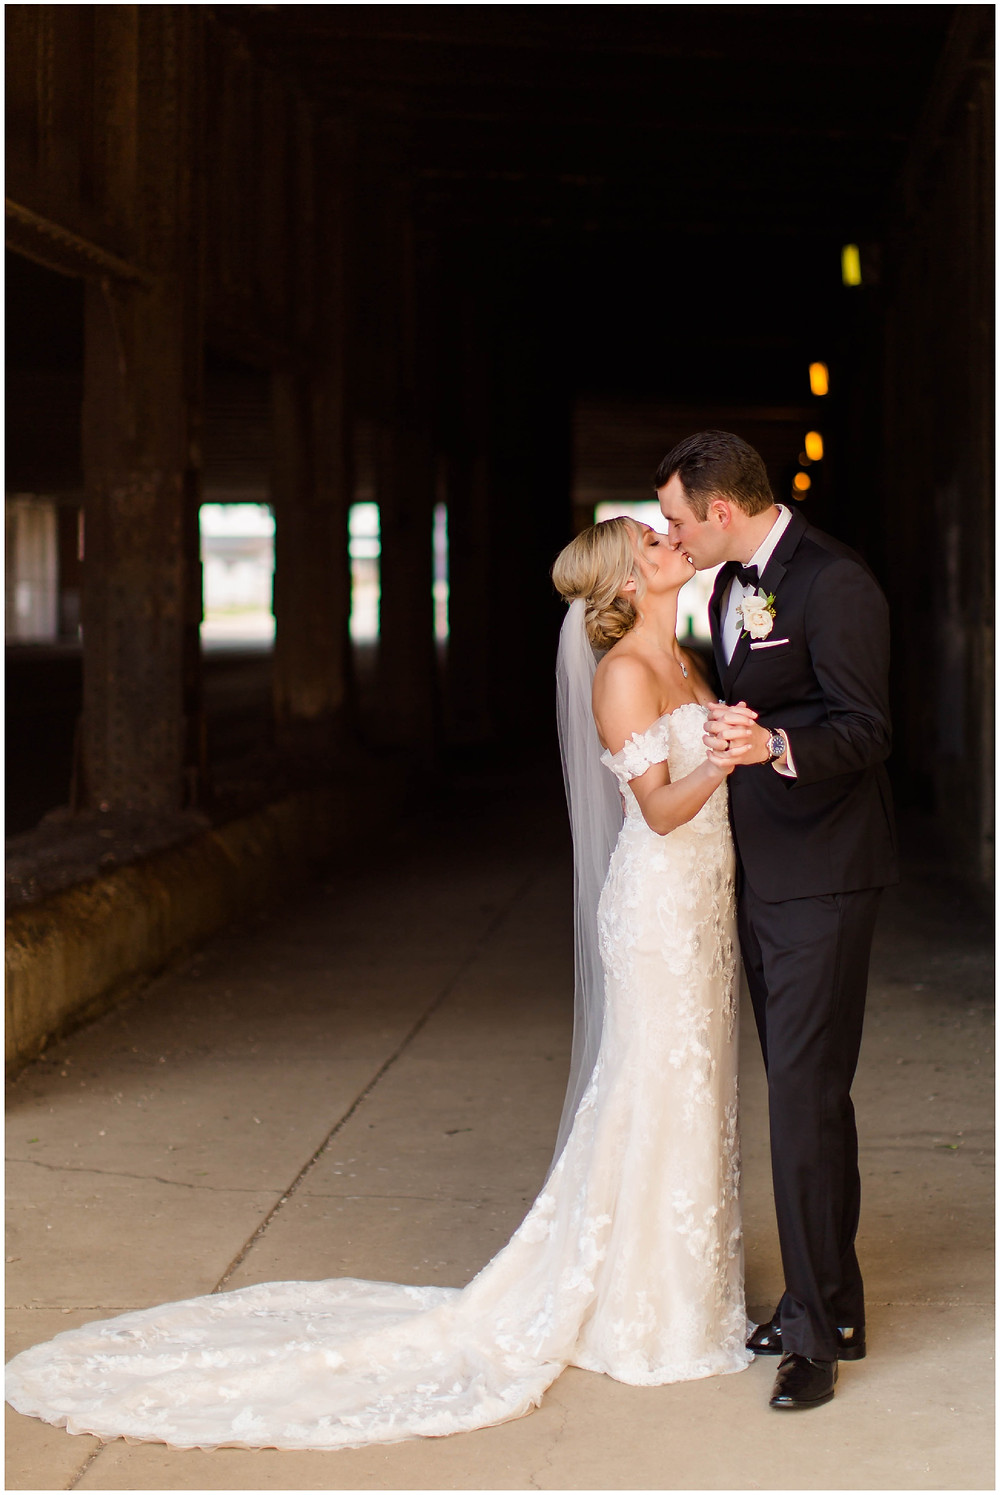 Wedding-photographer-indianapolis